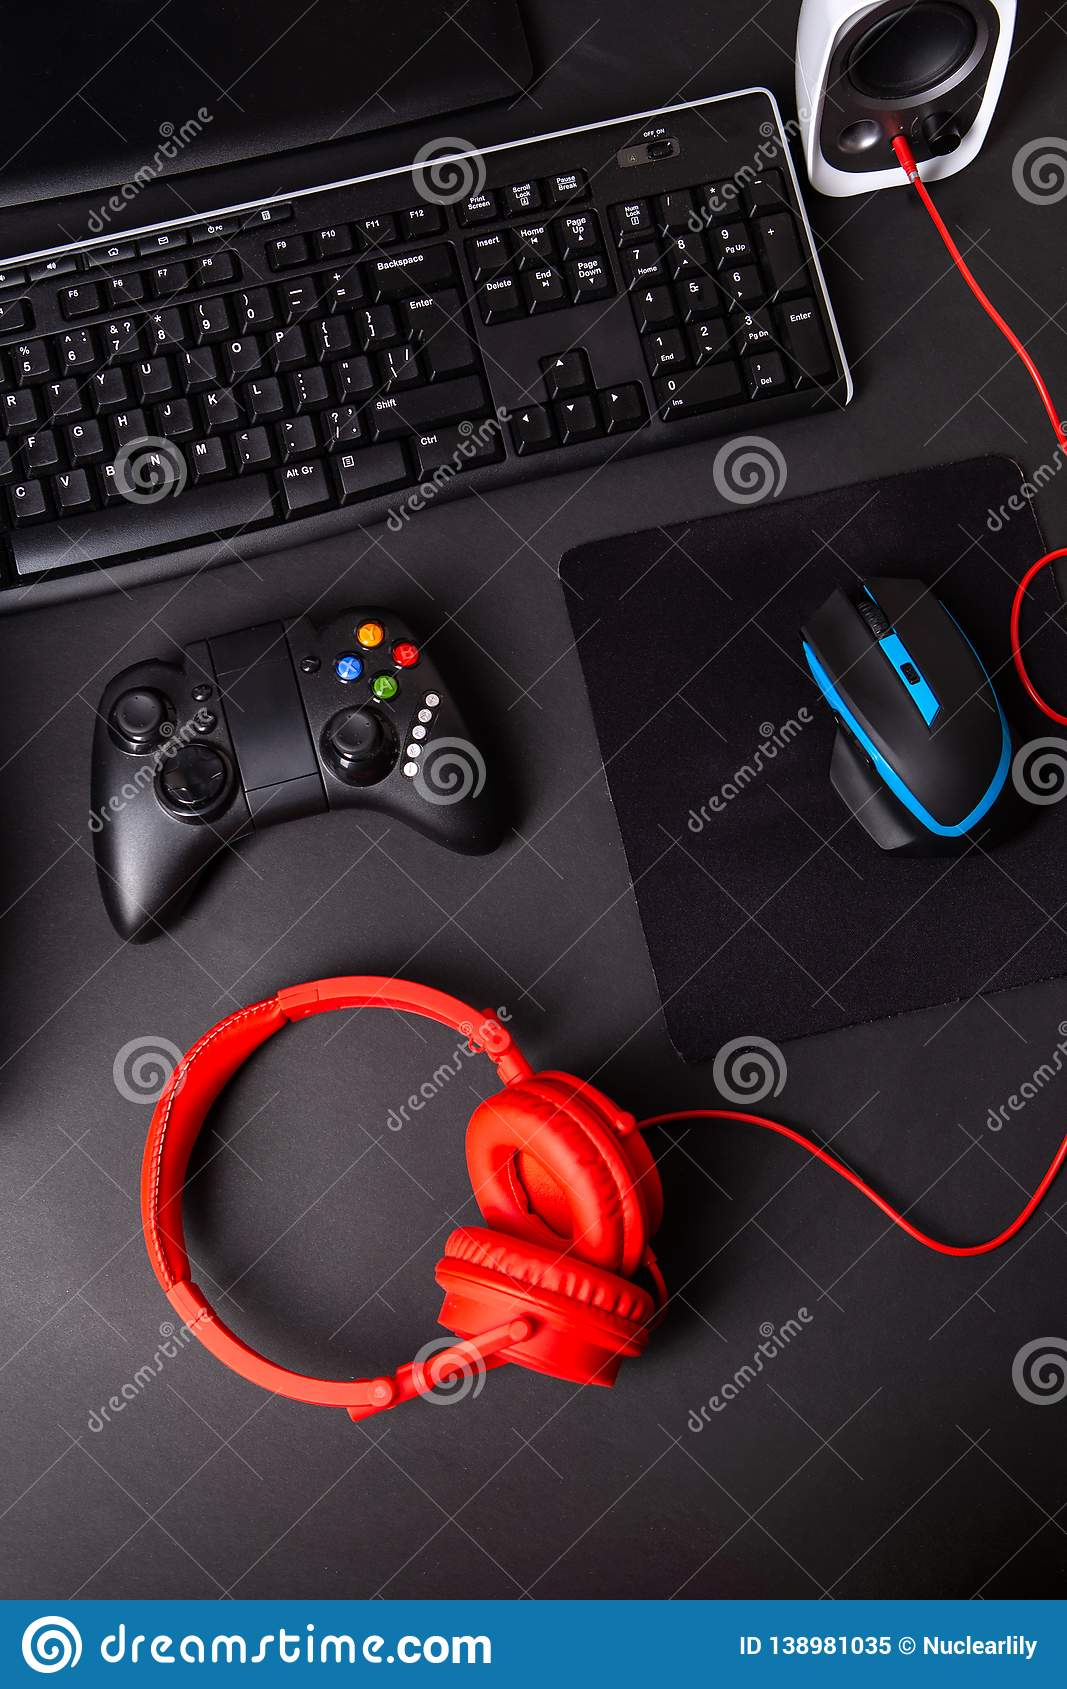 Top View A Gaming Gear, Mouse, Keyboard, Joystick, Headset, VR